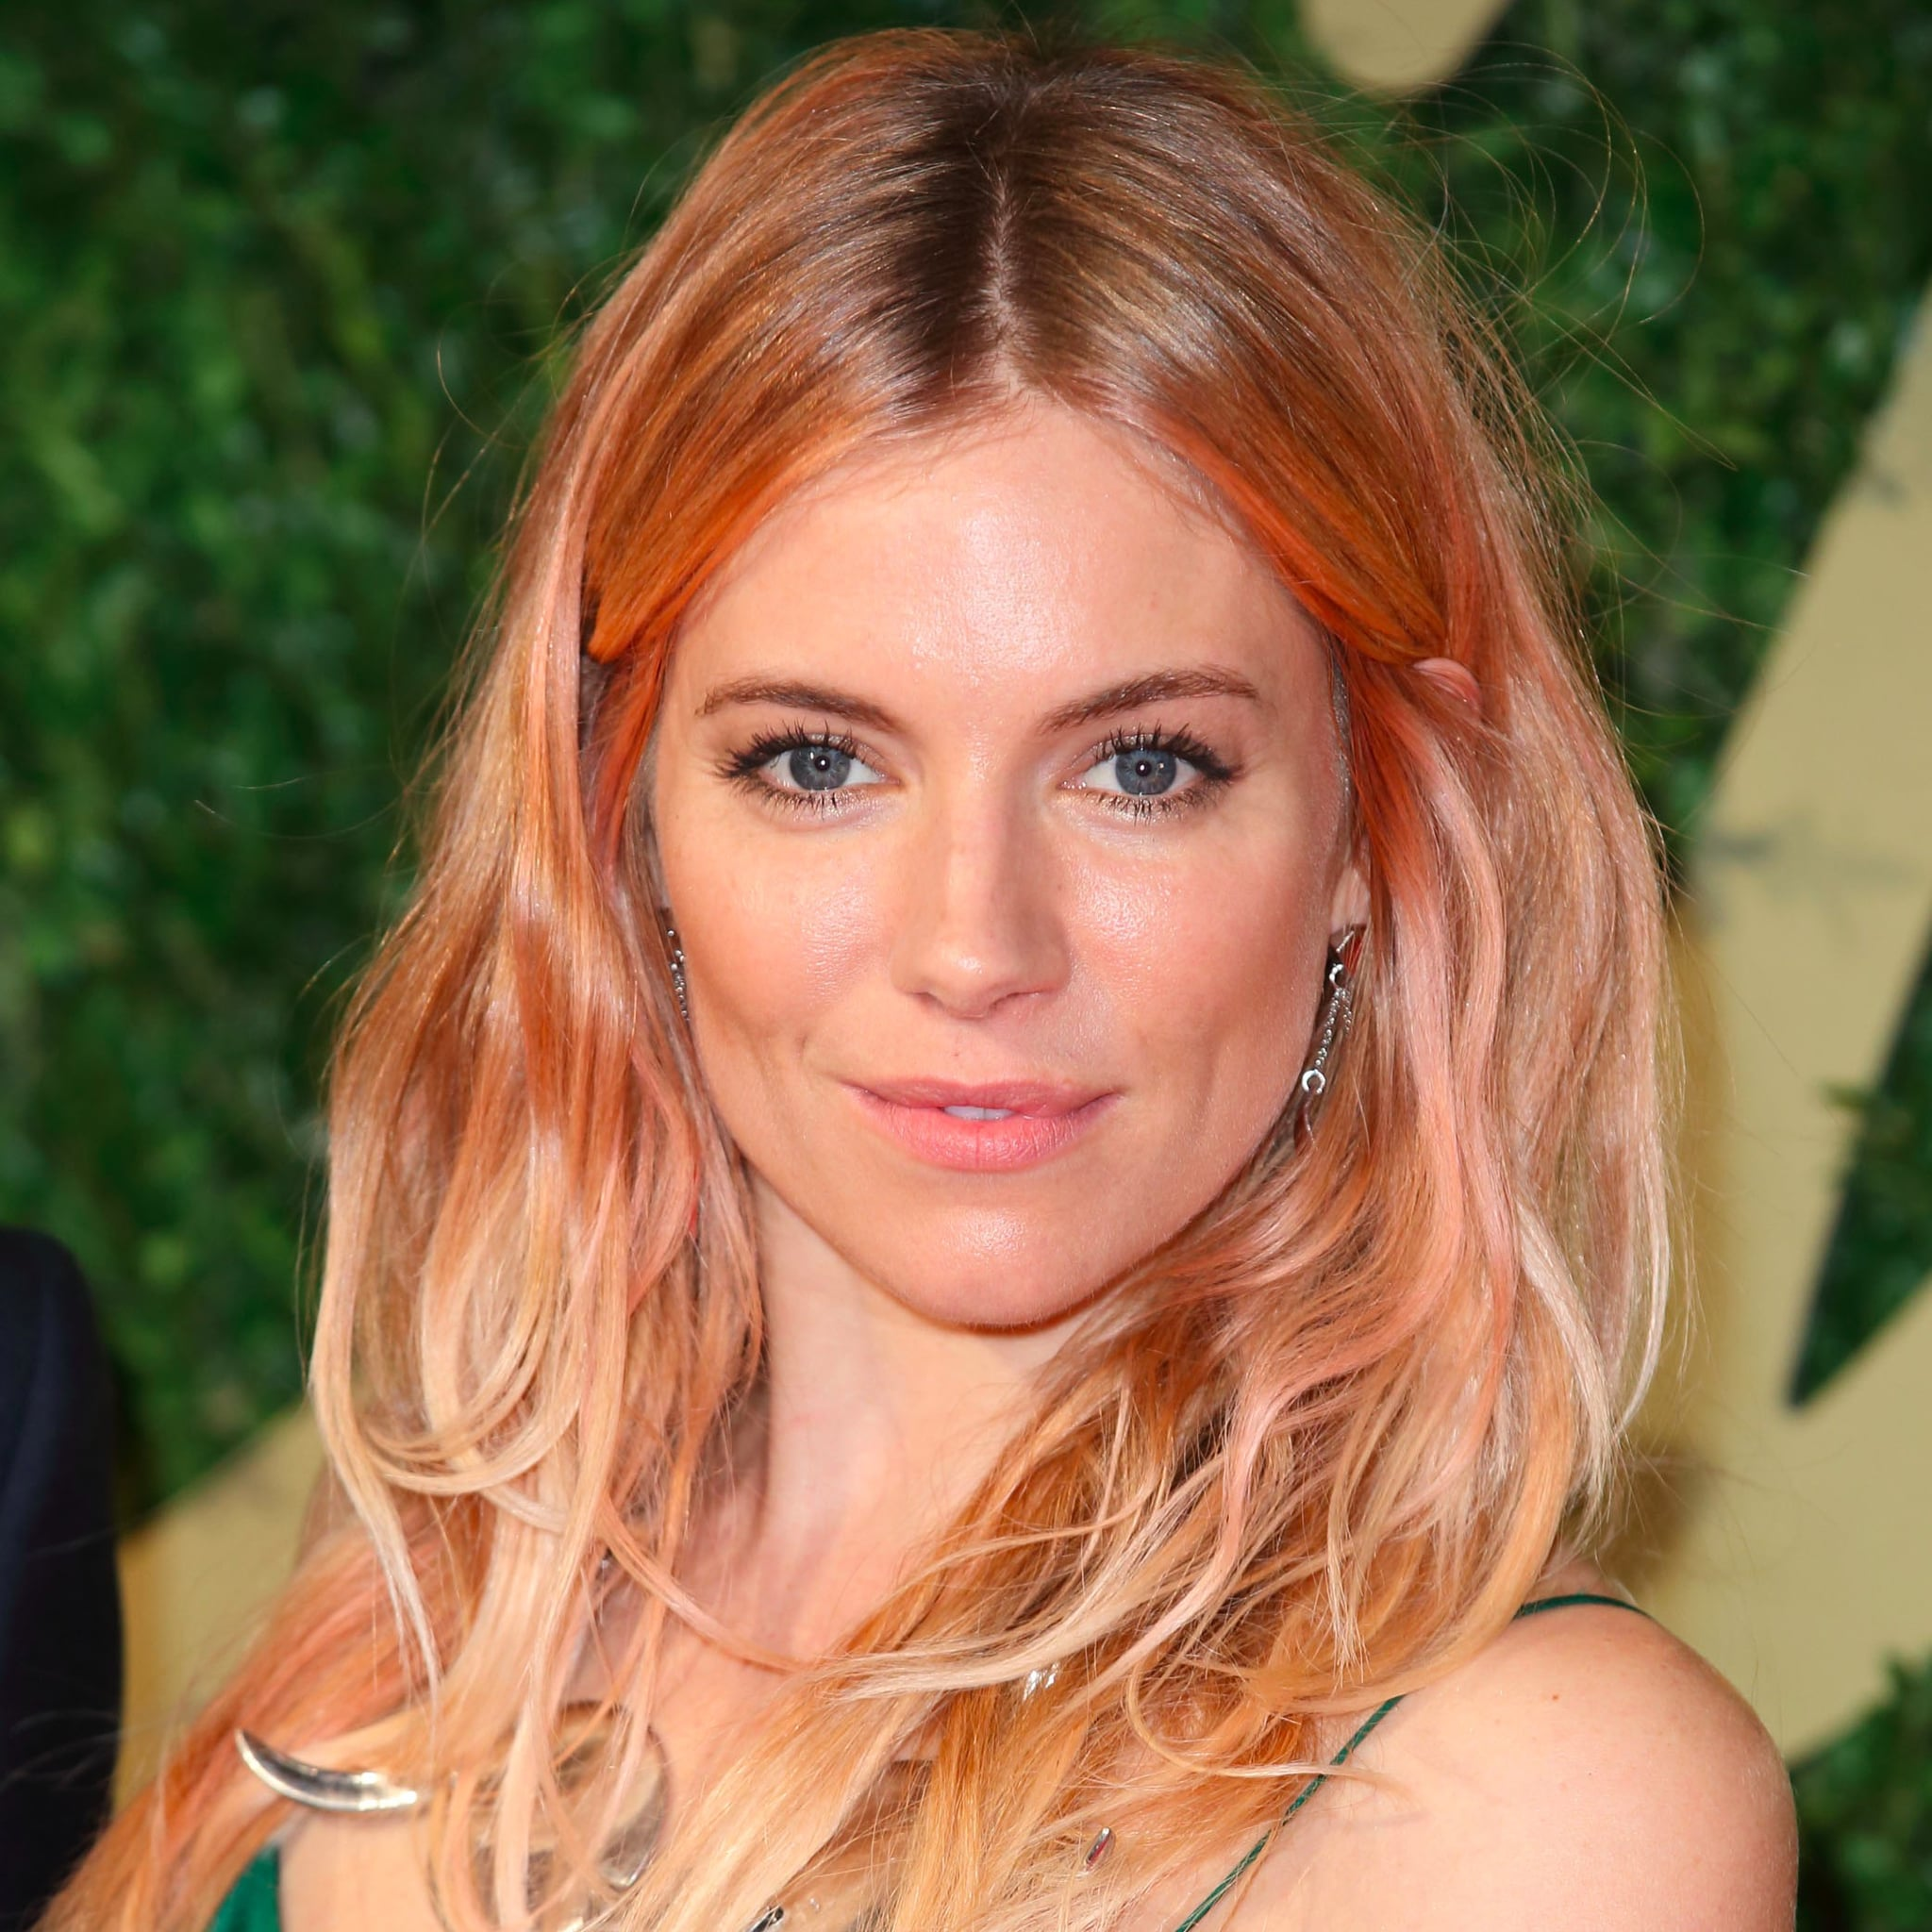 Celebrities With Rose Gold Hair | POPSUGAR Beauty UK